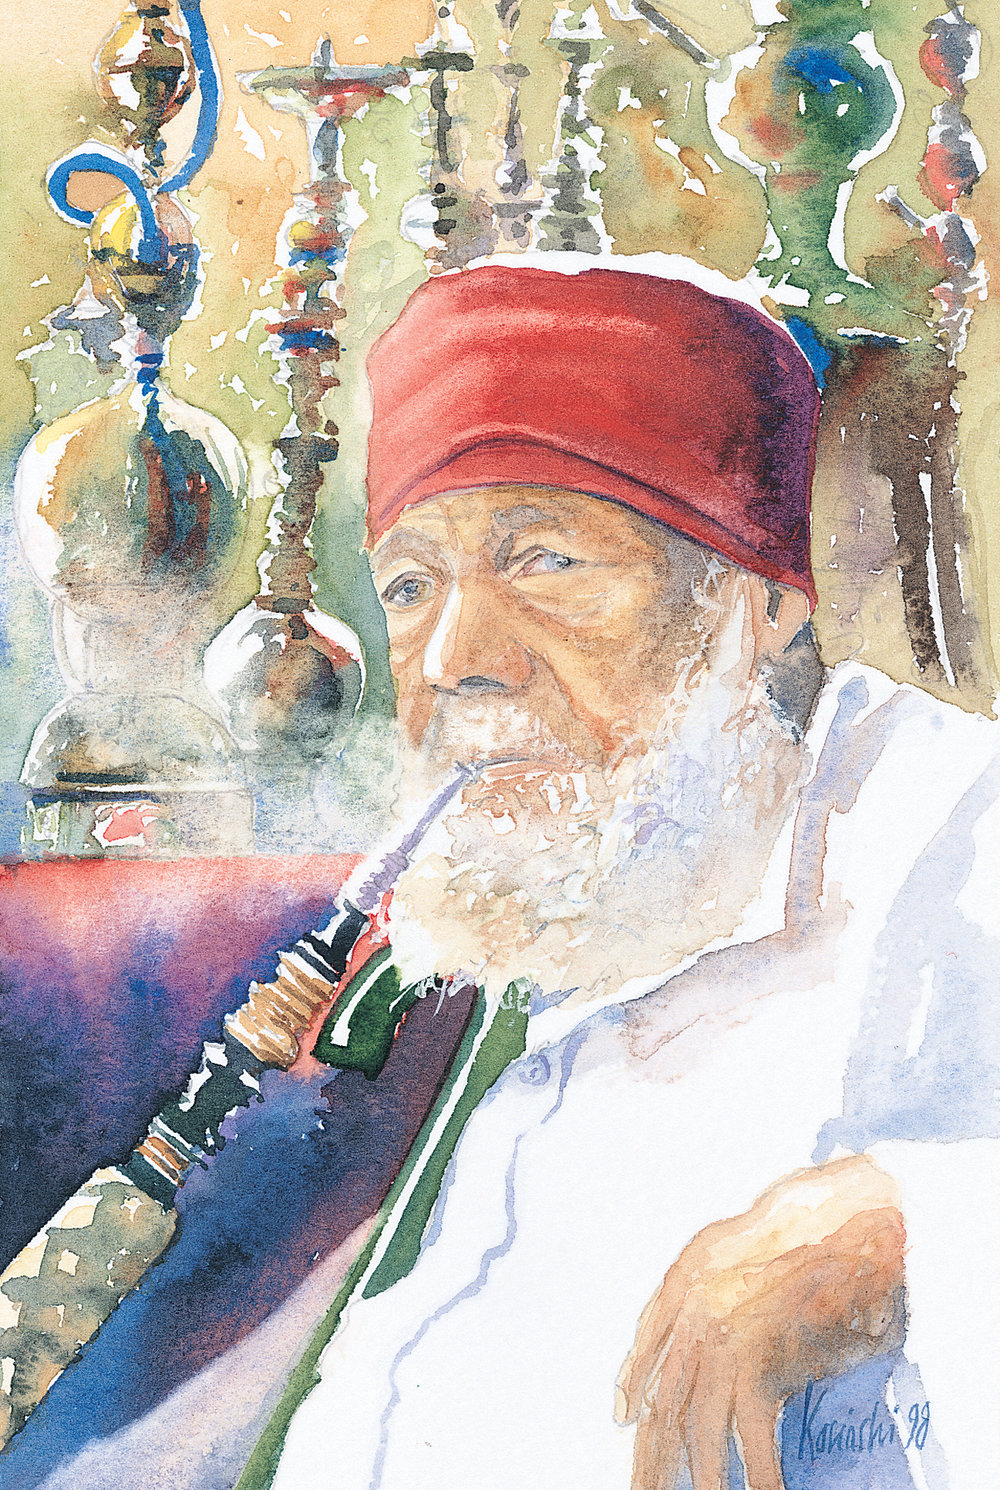 Old  Smoker, Khan Khalilee, Cairo